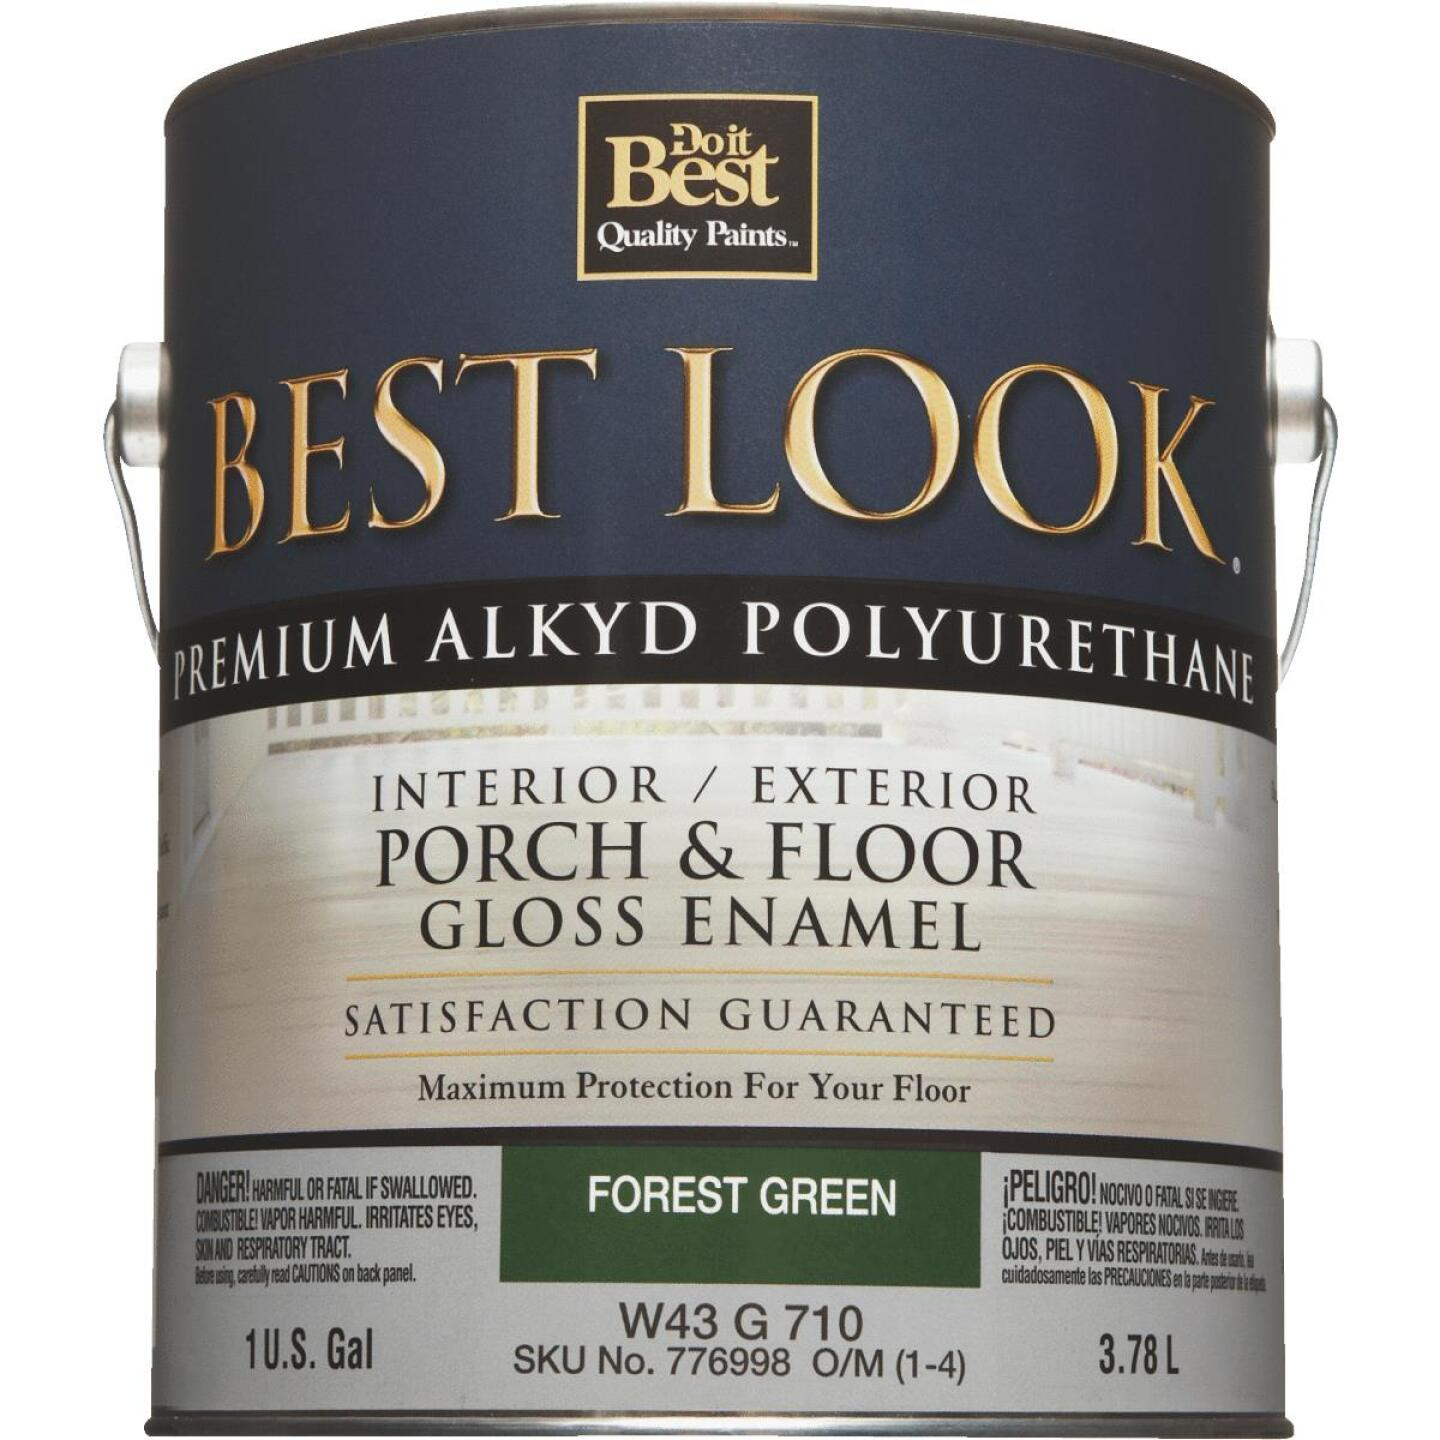 Best Look 1 Gal. Forest Green Polyurethane Gloss Porch & Floor Enamel Image 2